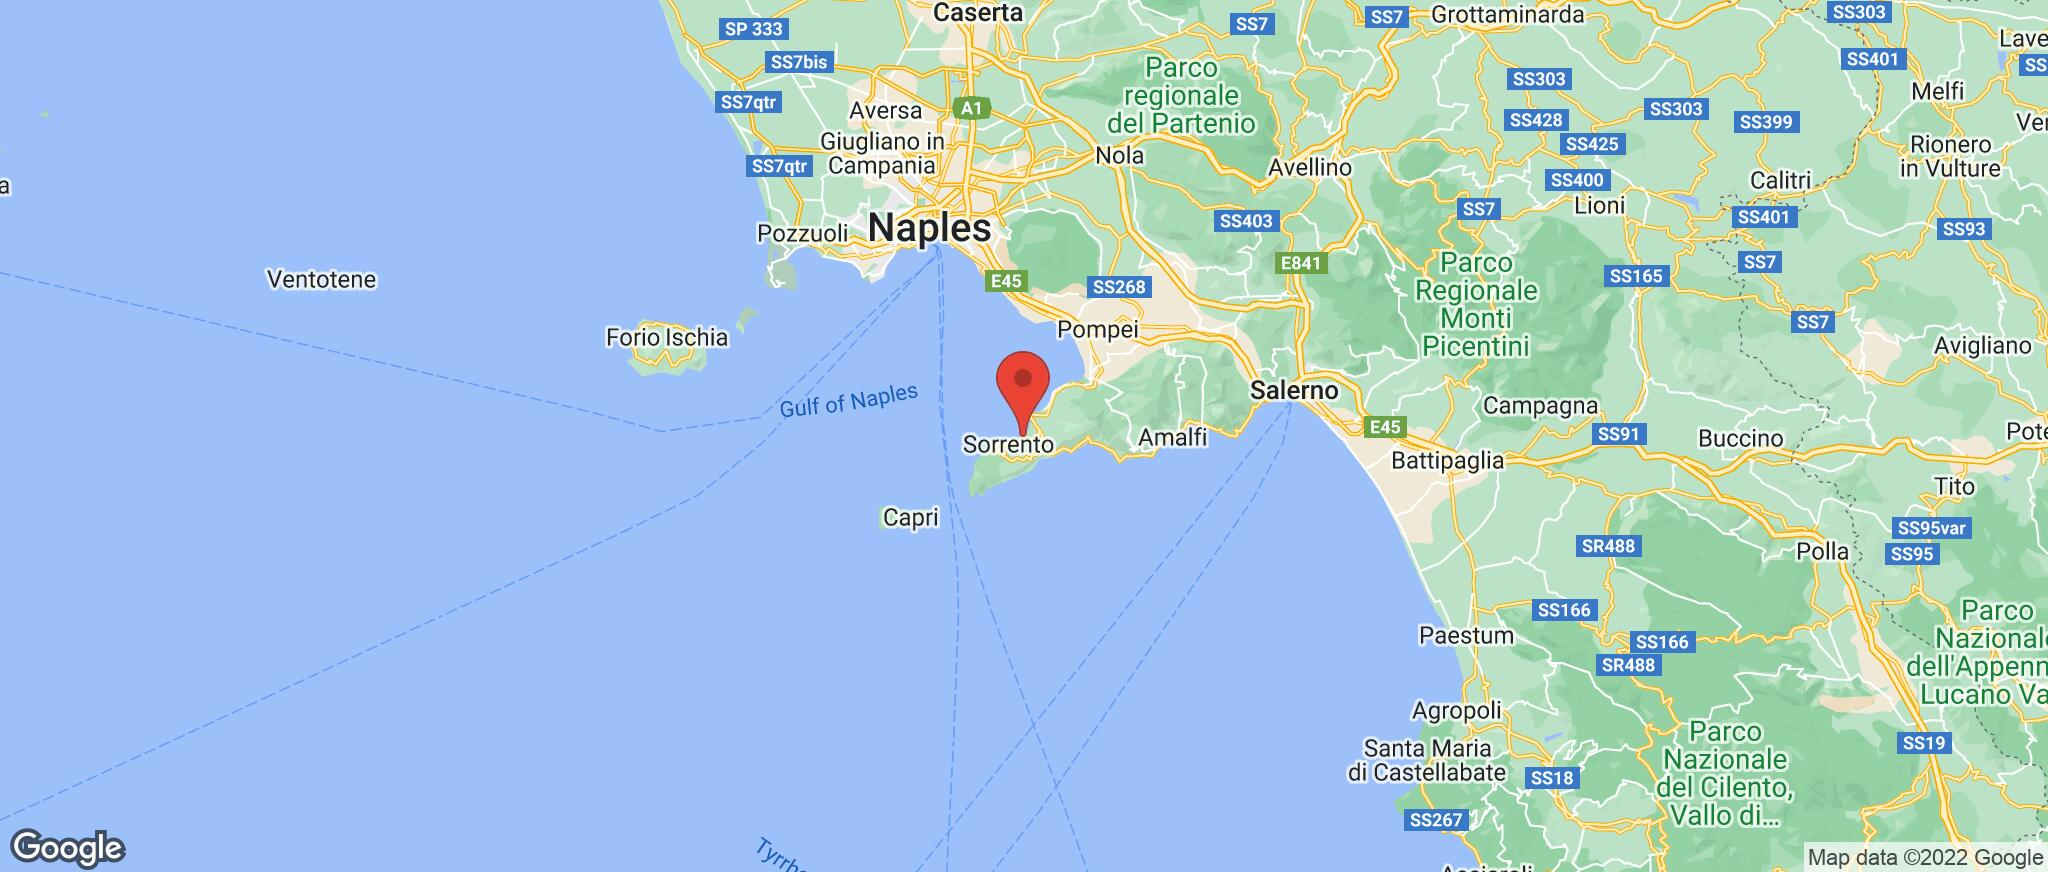 Map showing the location of Sant Agnello